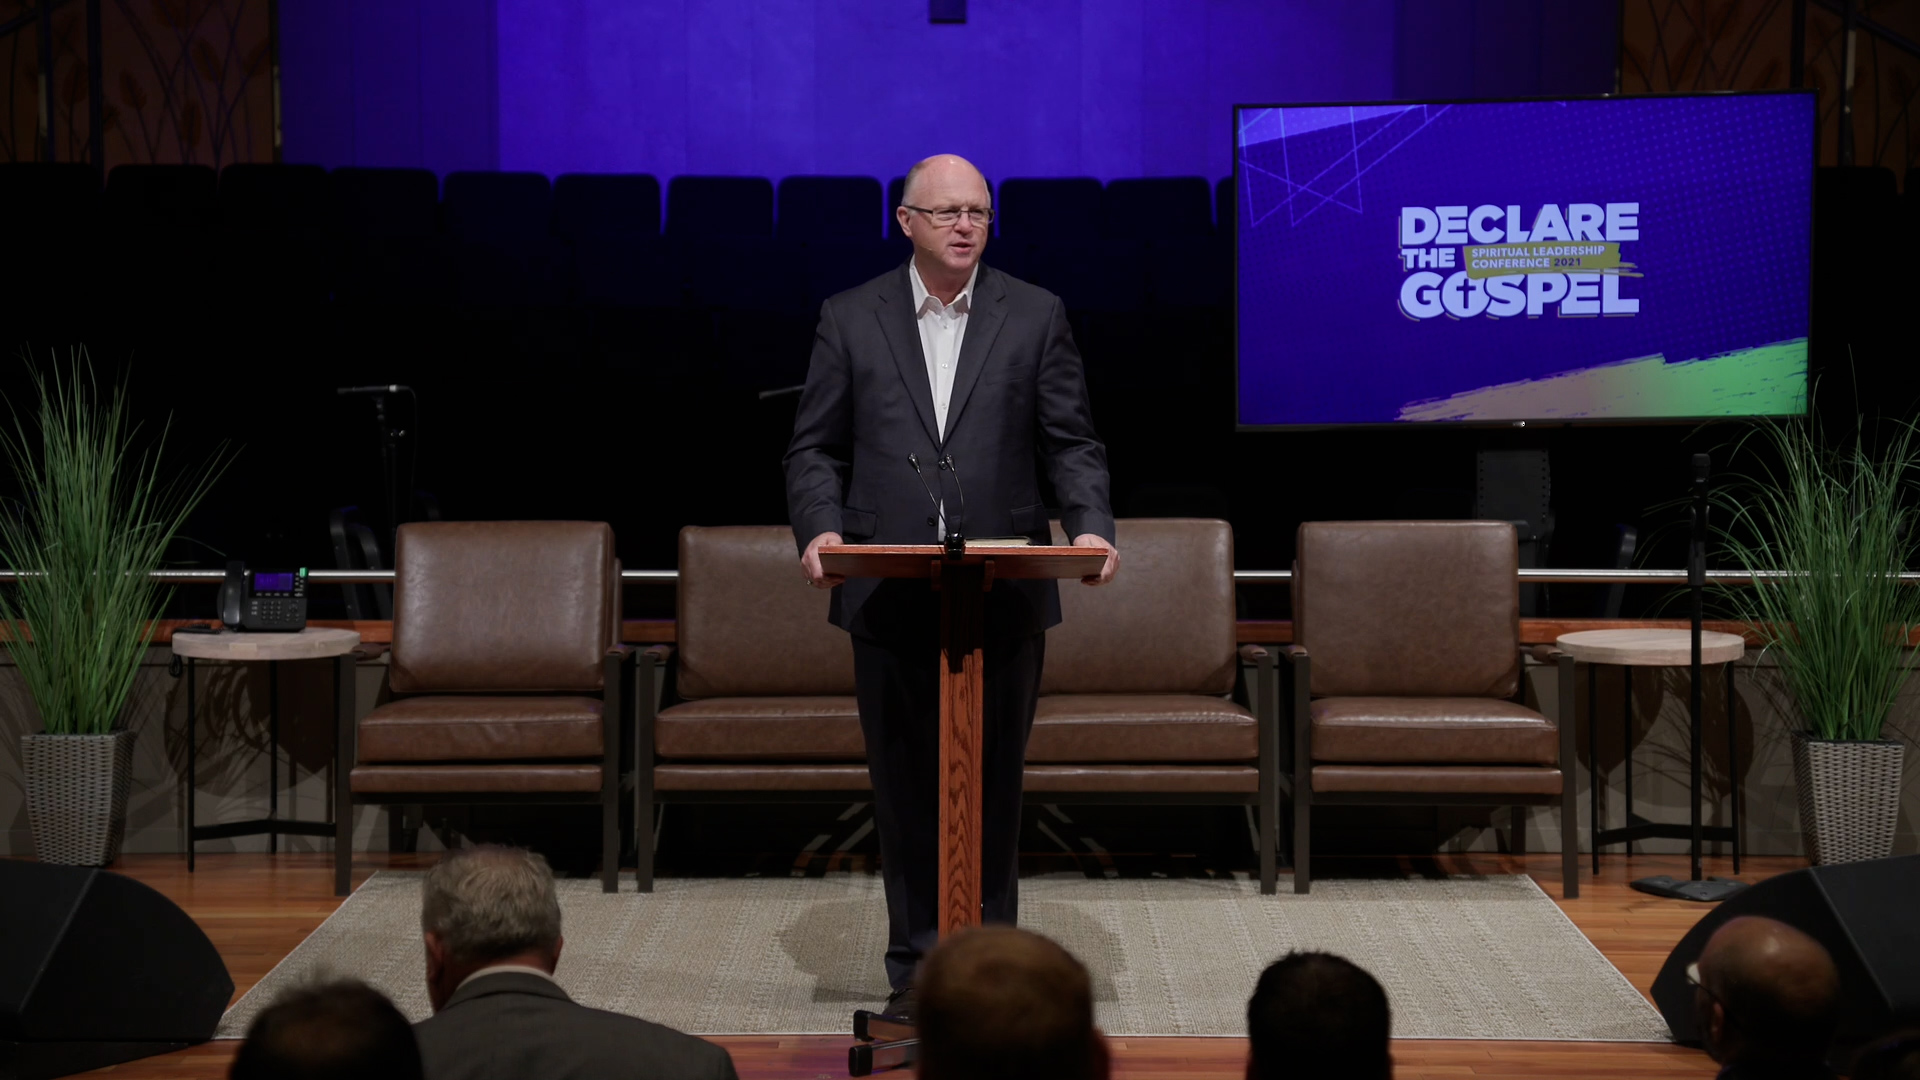 Pastor Paul Chappell: Setting the Course with a Fresh Vision